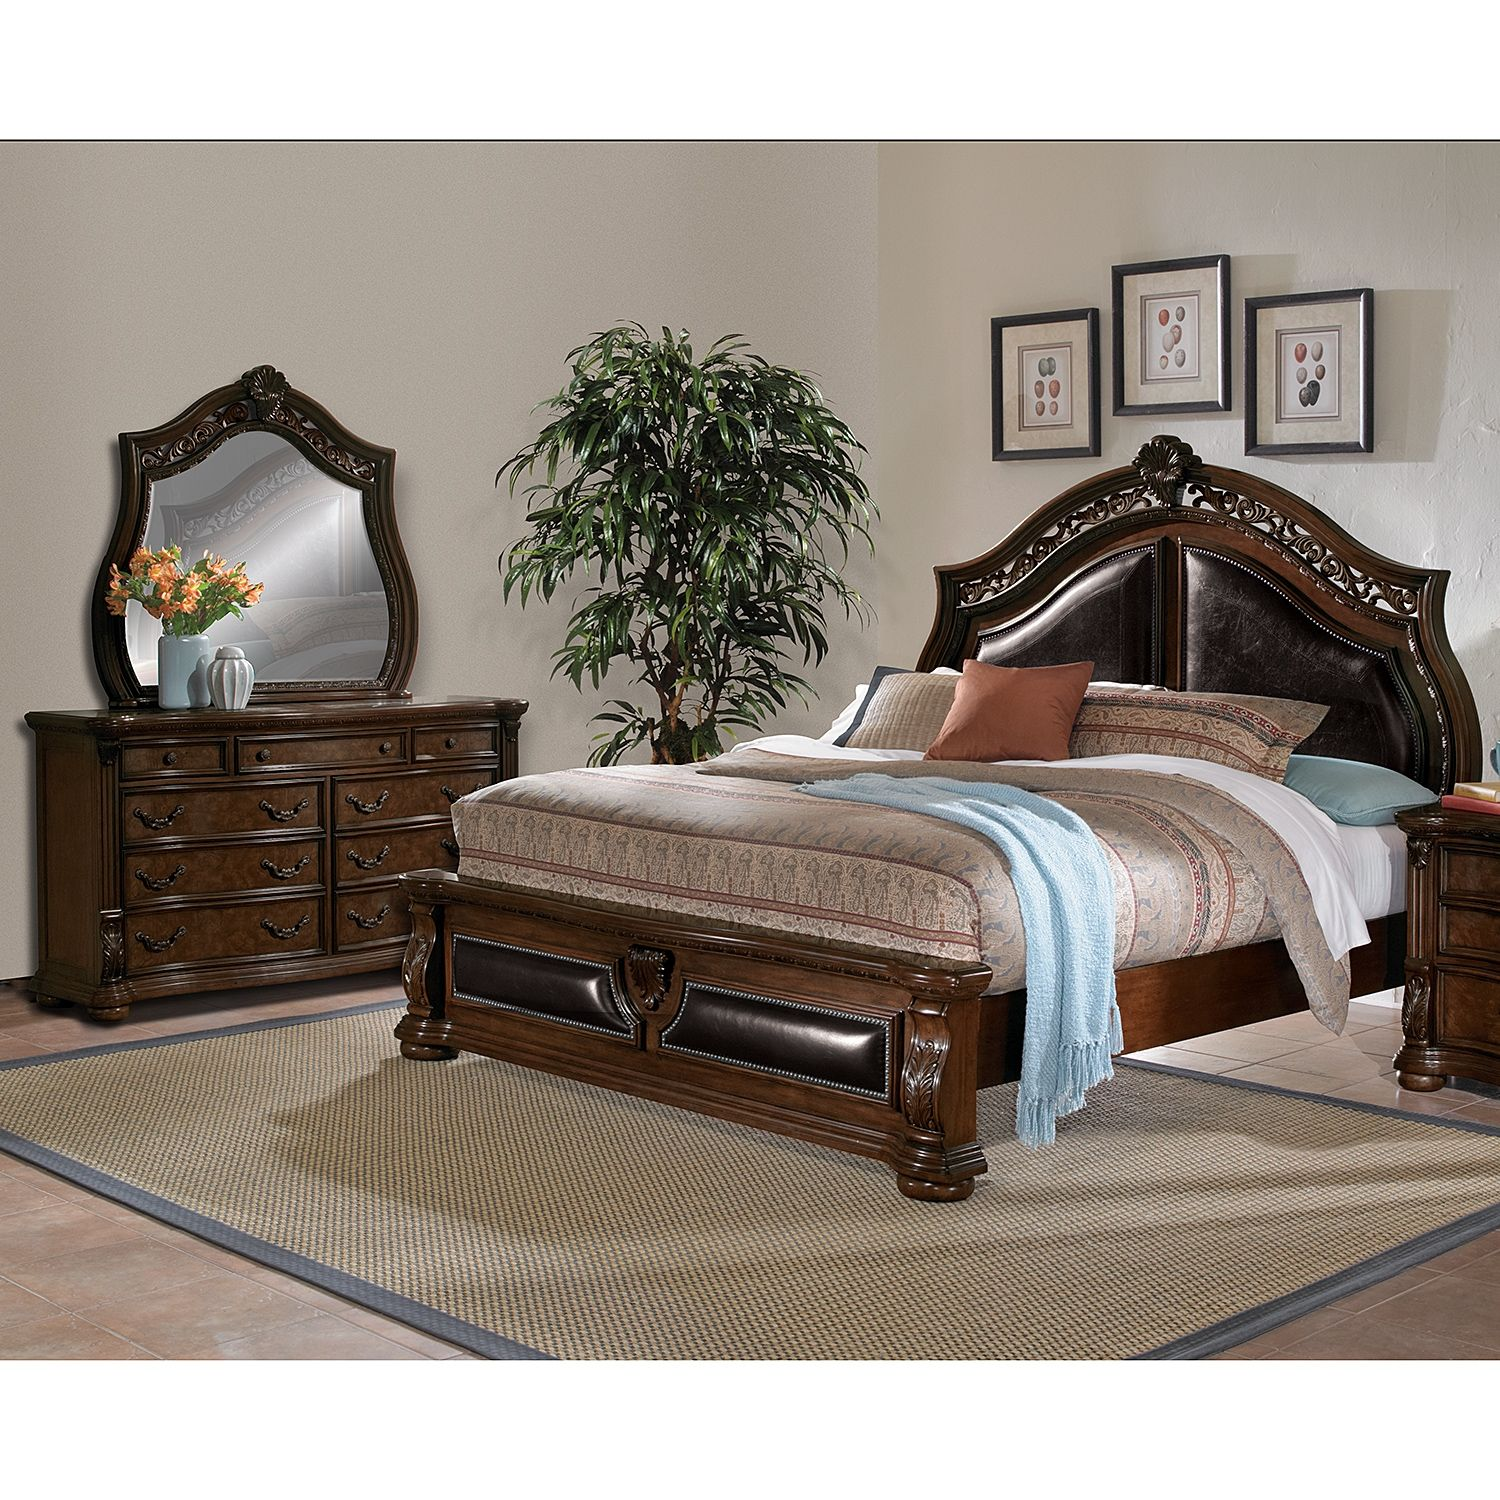 city furniture bedroom set. Angelina 6 Pc  King Bedroom American Signature Furniture Home Decor Inspiration Pinterest bedroom Bedrooms and City furniture